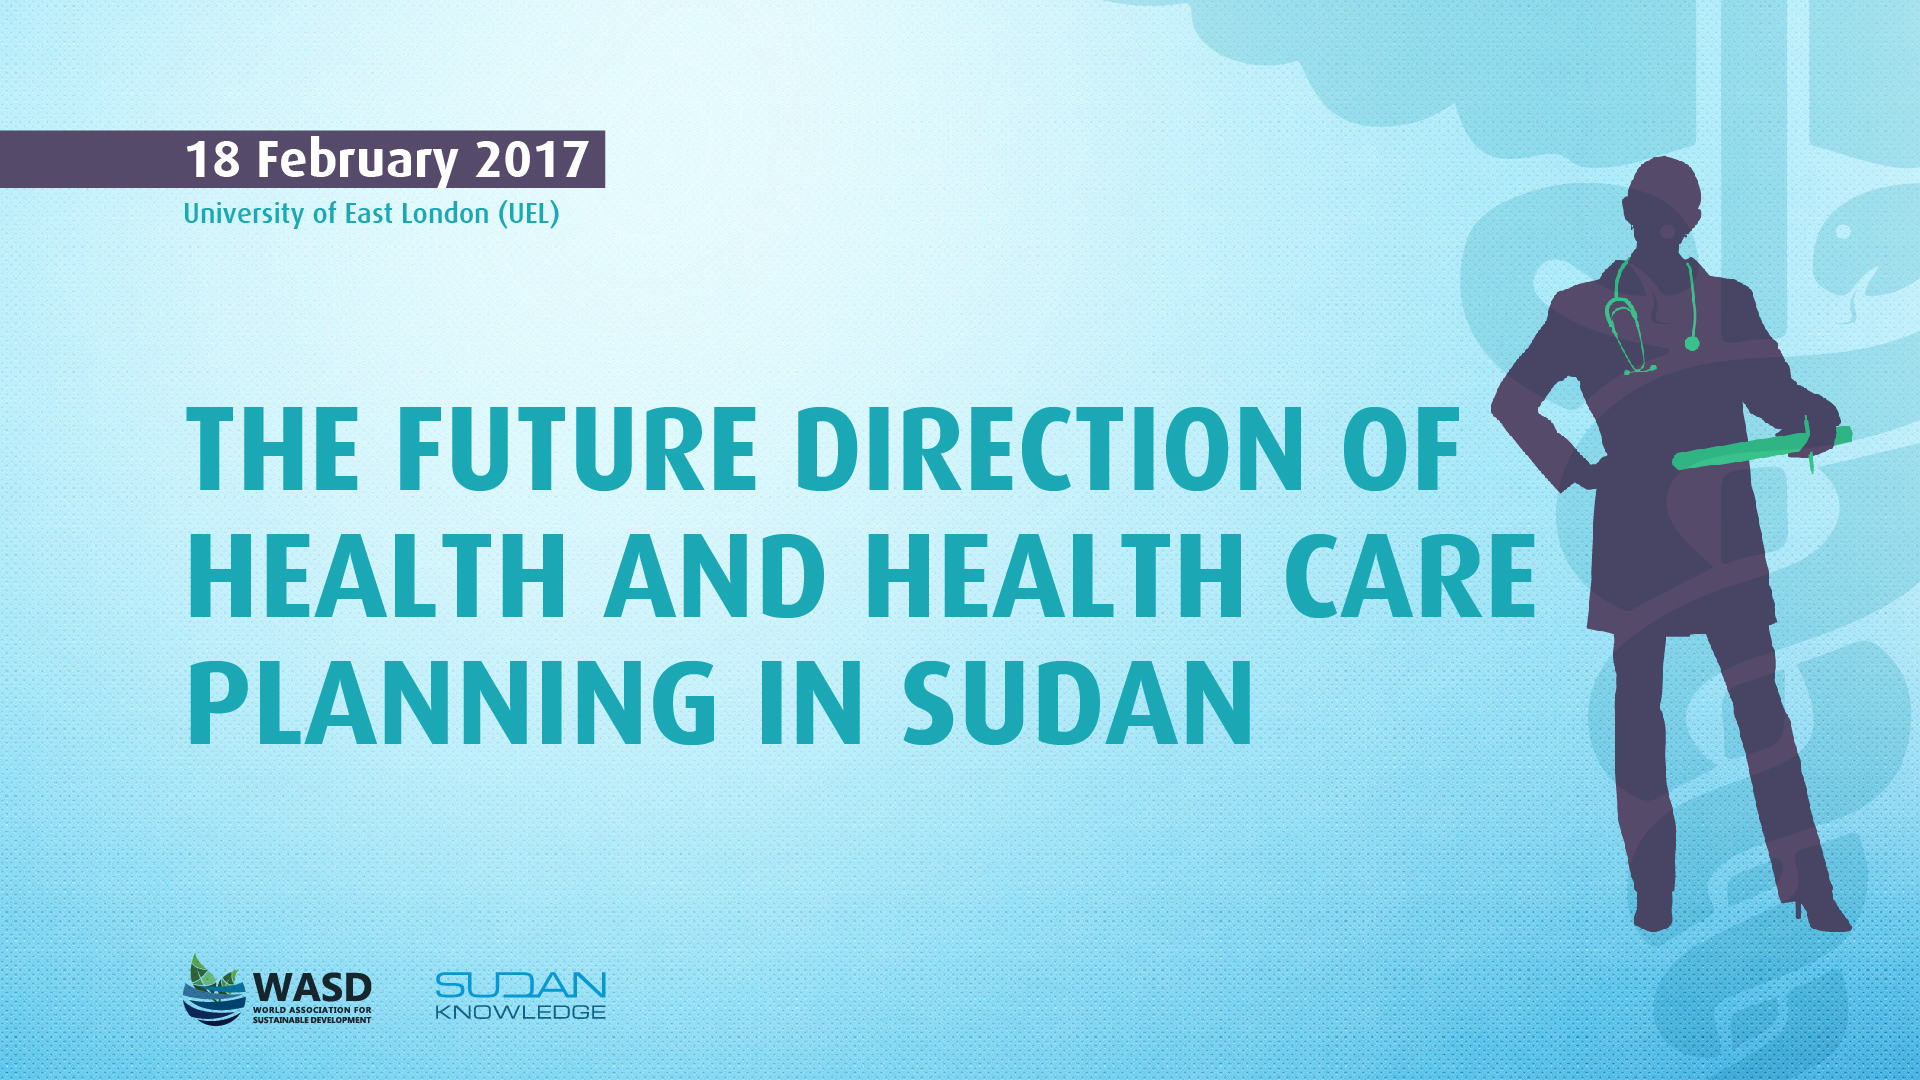 The future direction of health and health care planning in Sudan